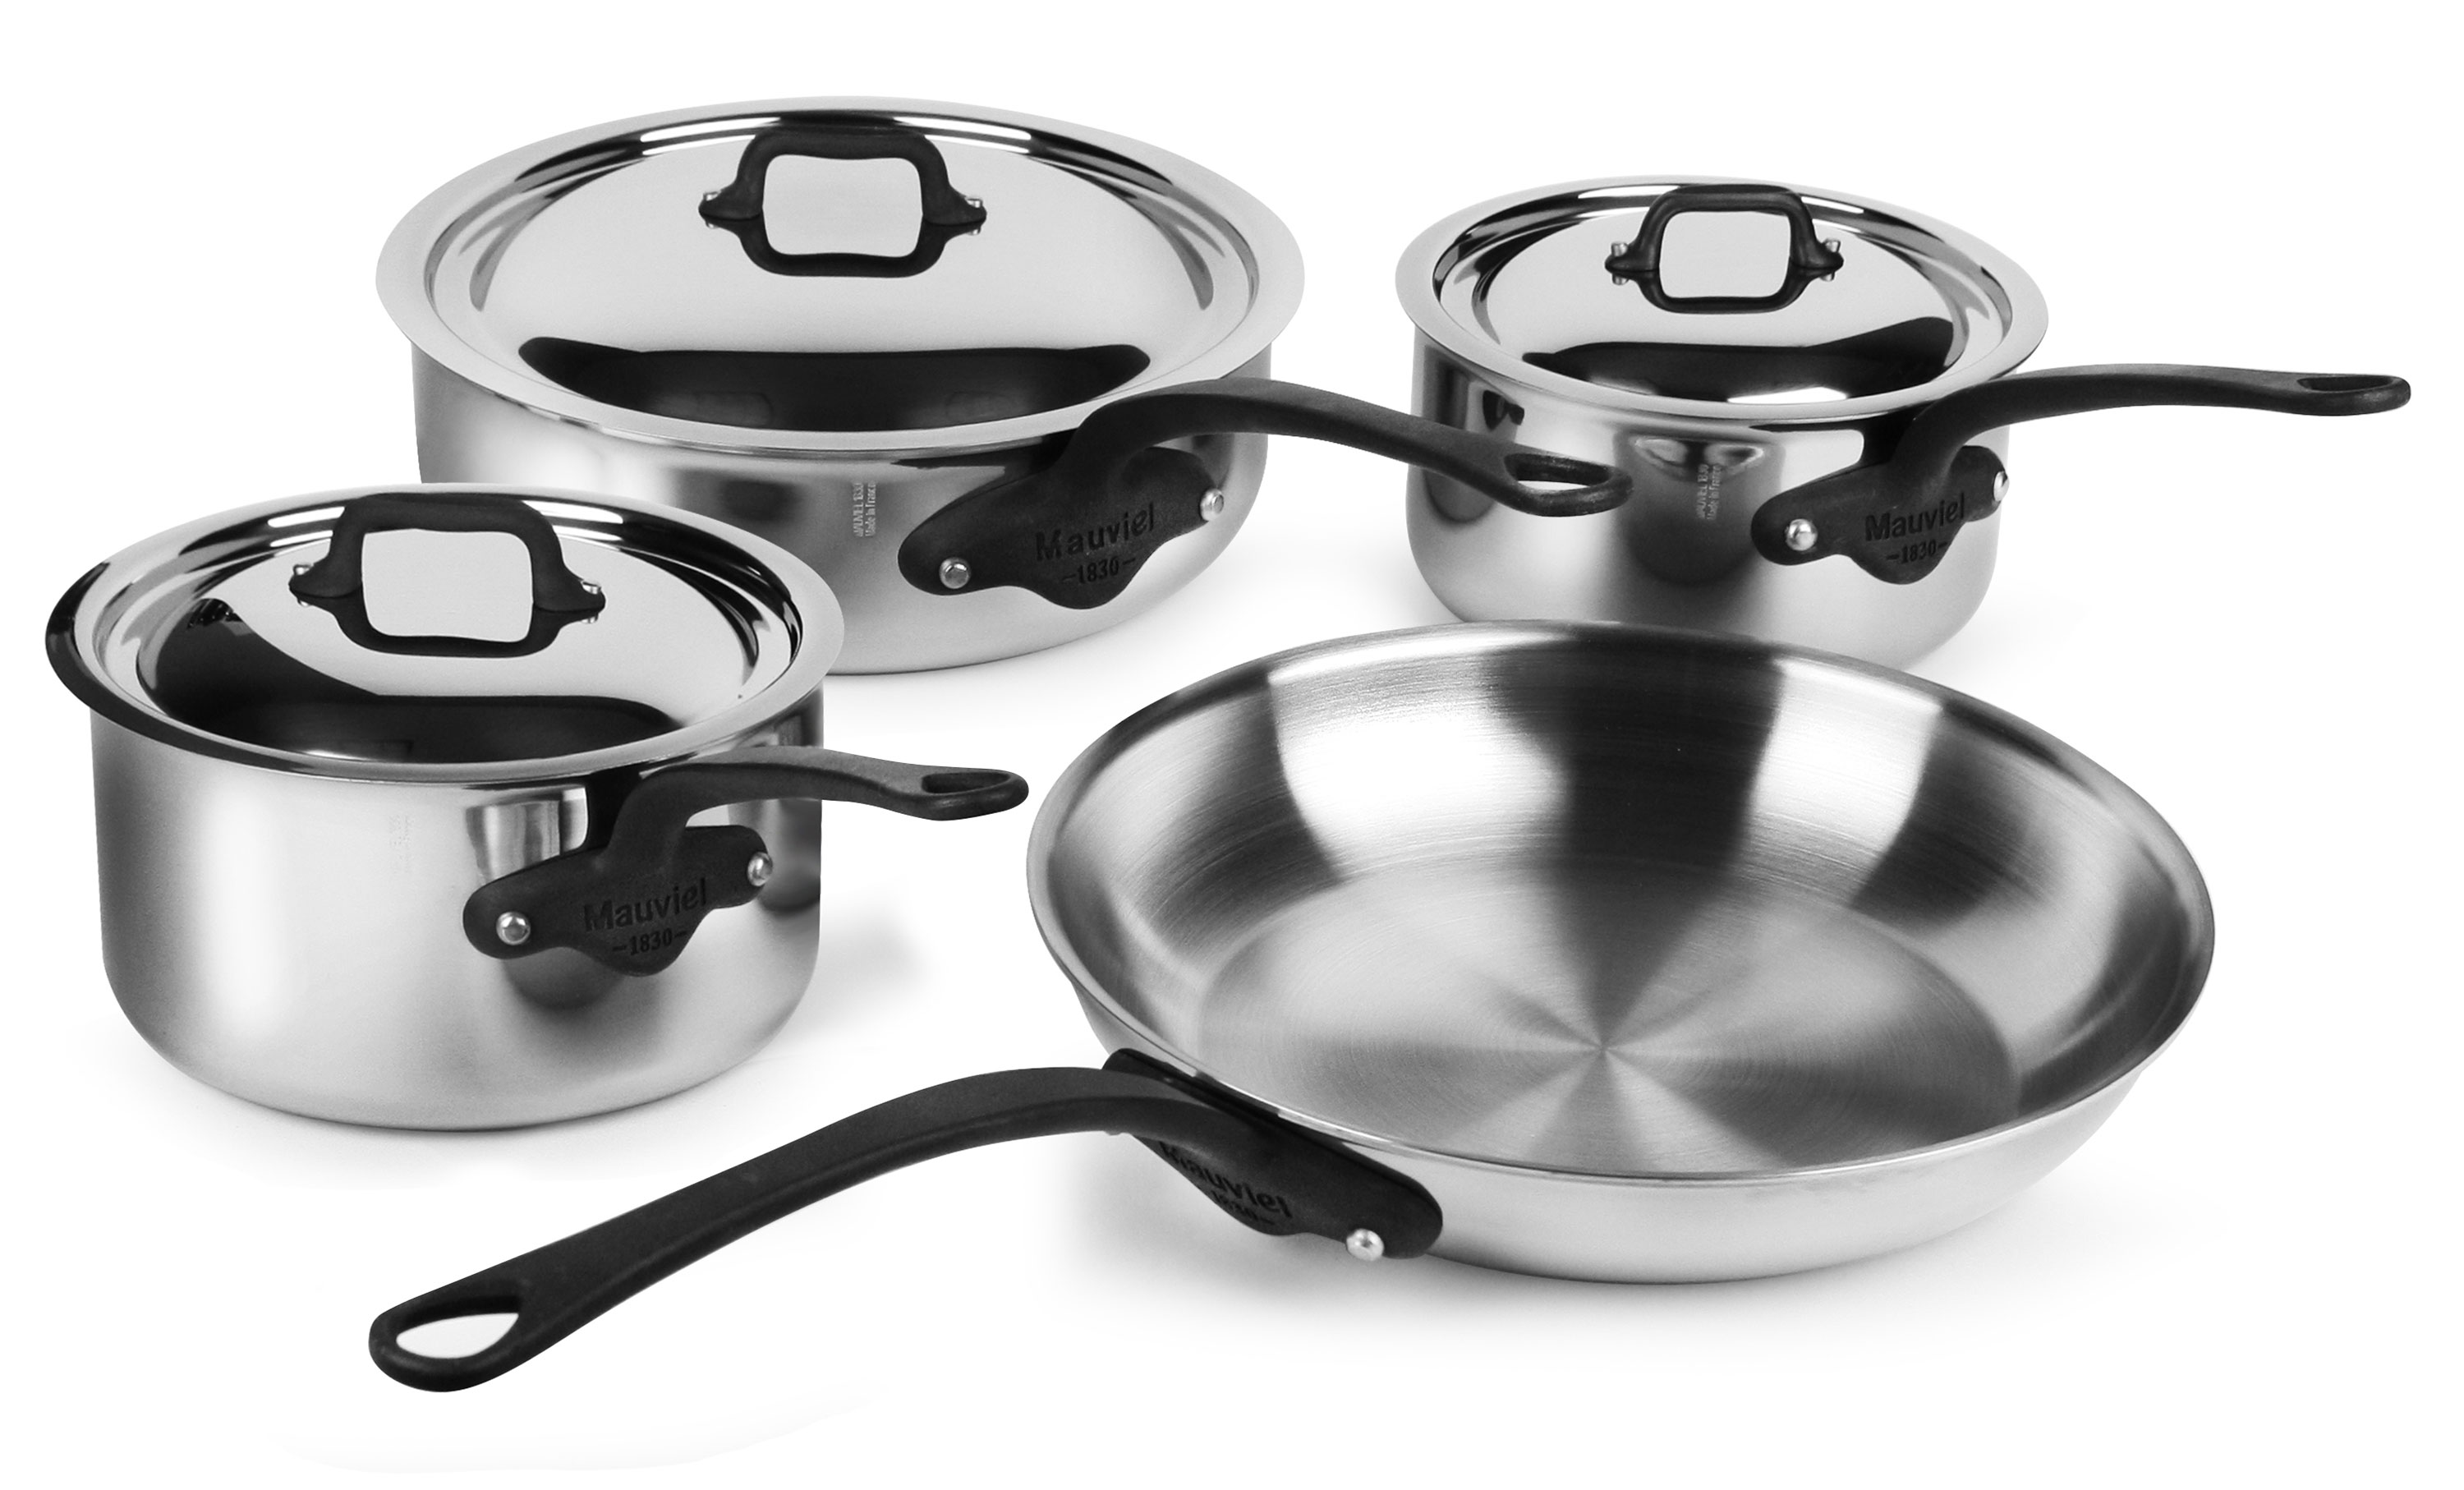 Mauviel M Cook Pro Stainless Steel Cookware Set 7 Piece